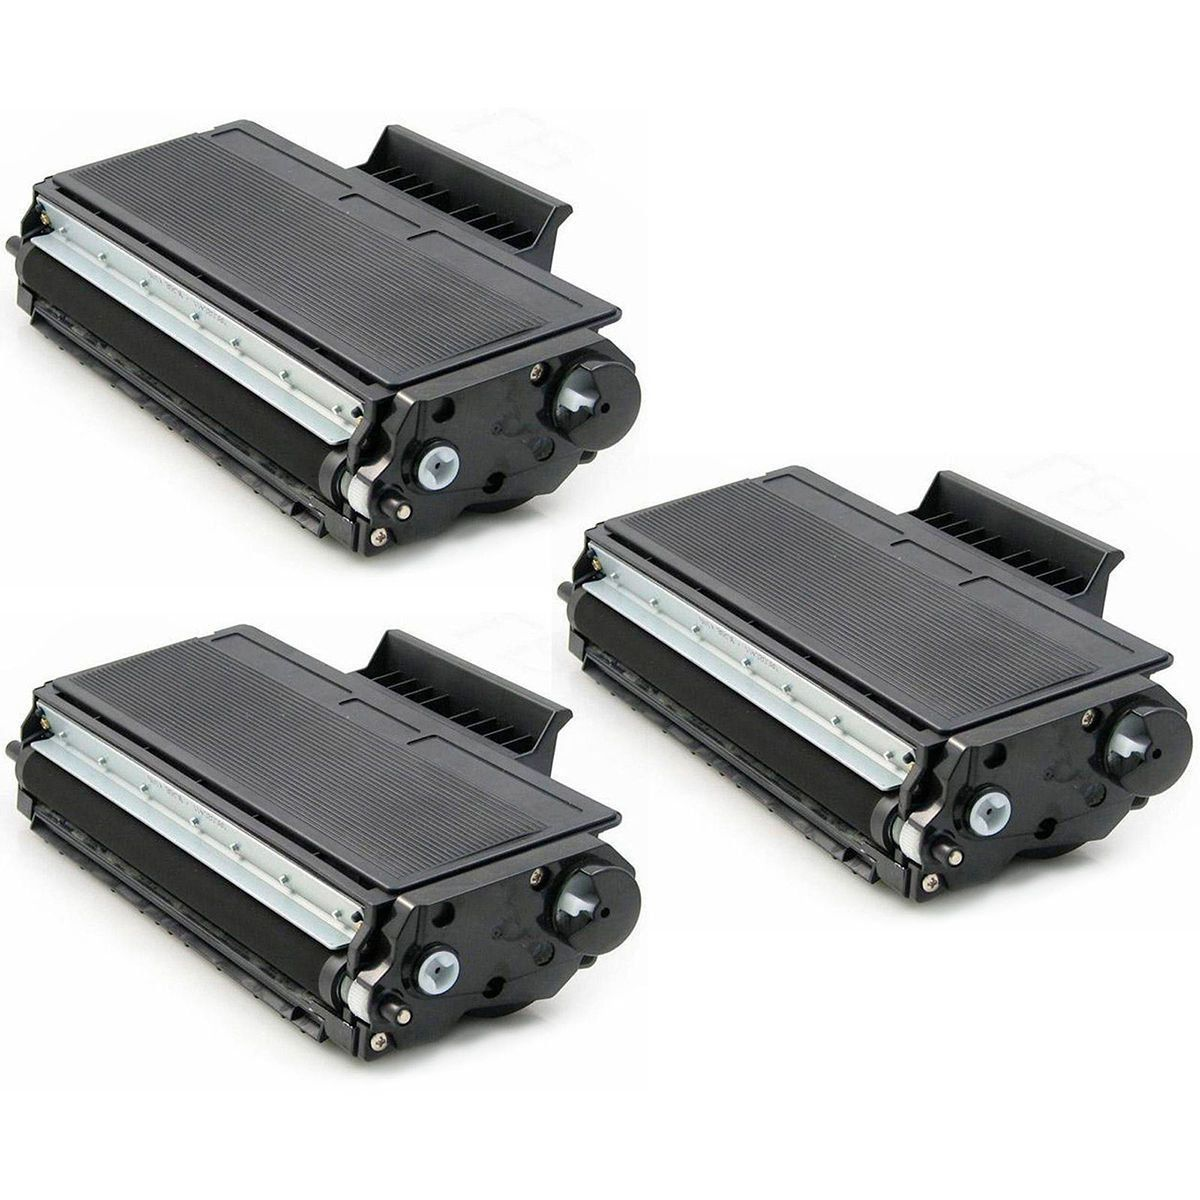 Compatível: Kit 3x Toner TN580 TN620 TN650 para Brother HL-5240 DCP-8060 8065 8080 8085 8660dn 8460n / Preto / 8.000